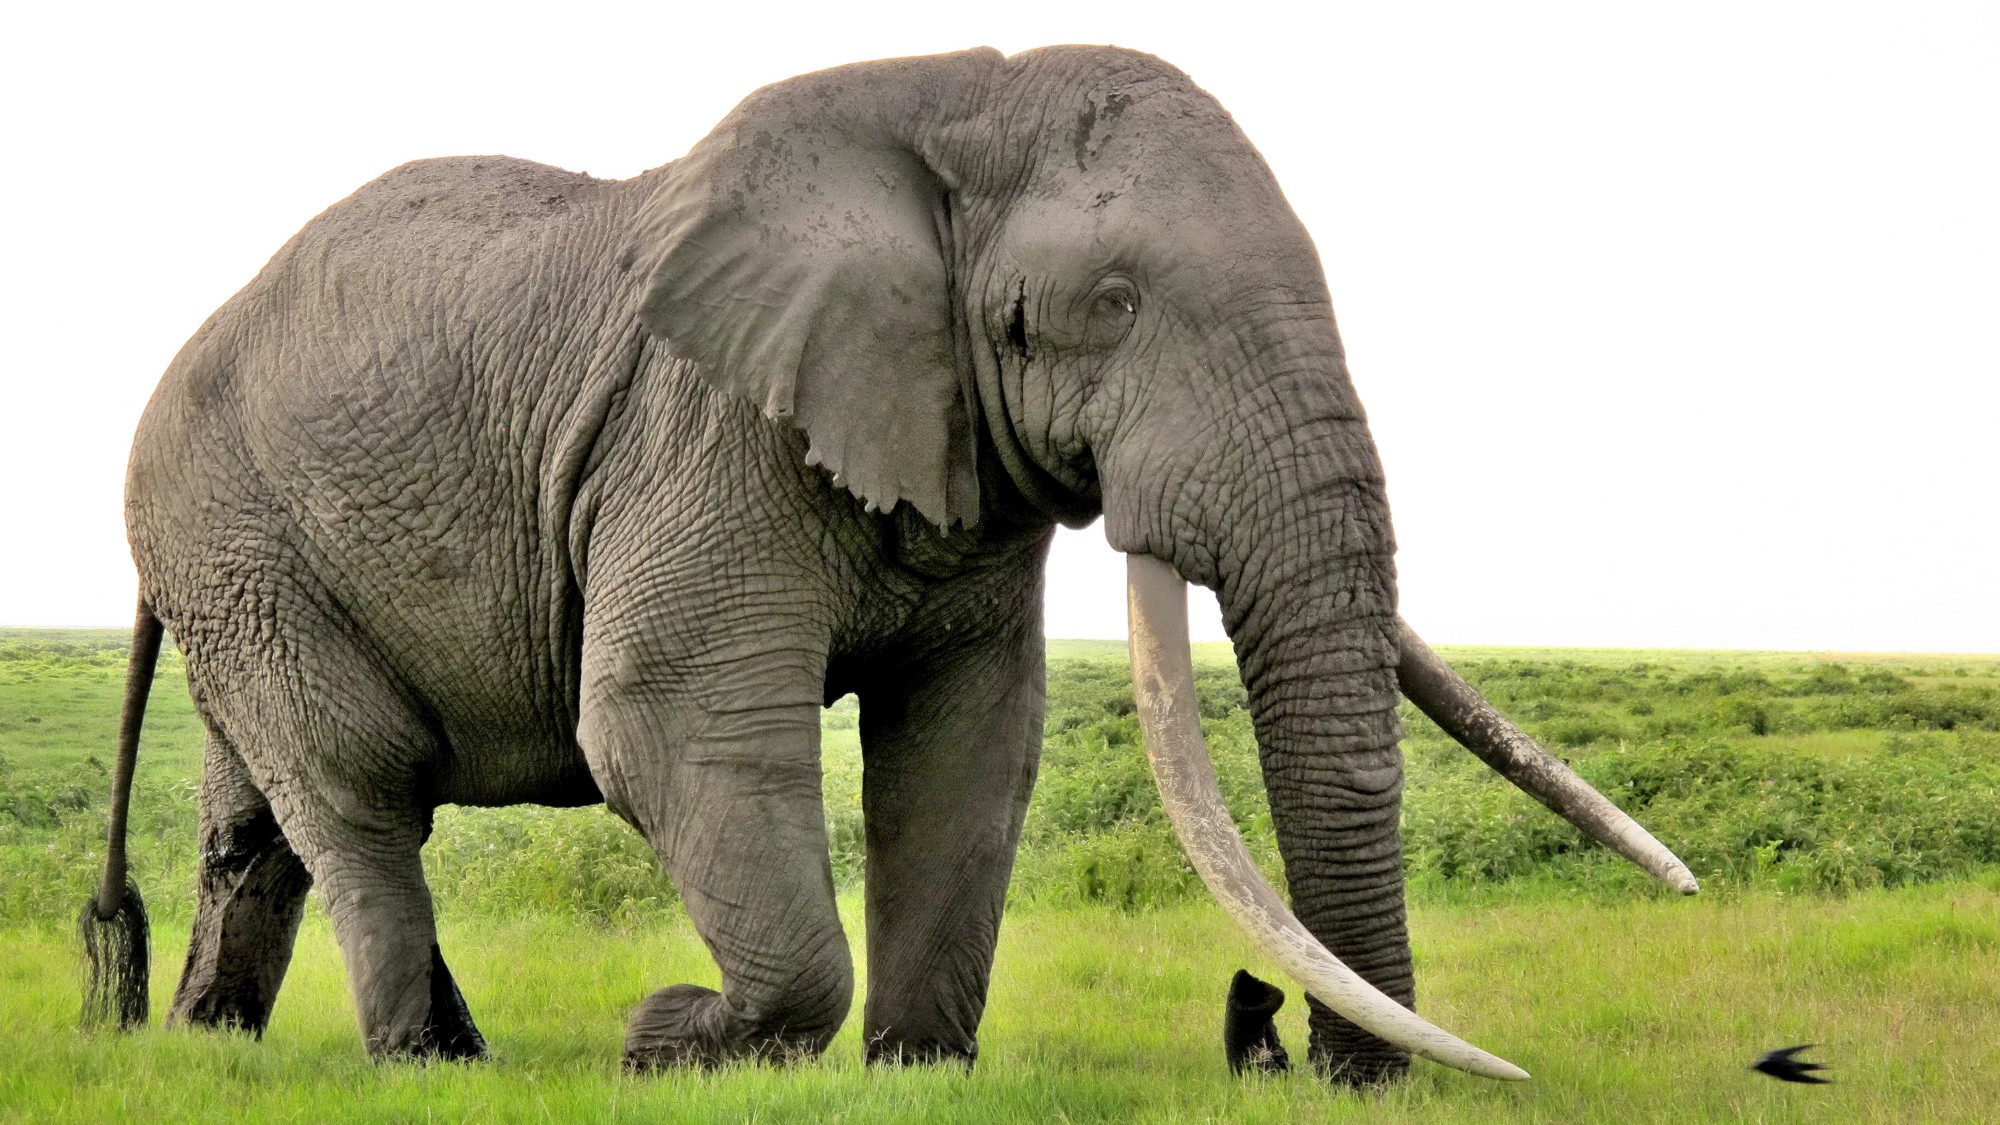 What Does It Mean That Another Giant Elephant Has Fallen?